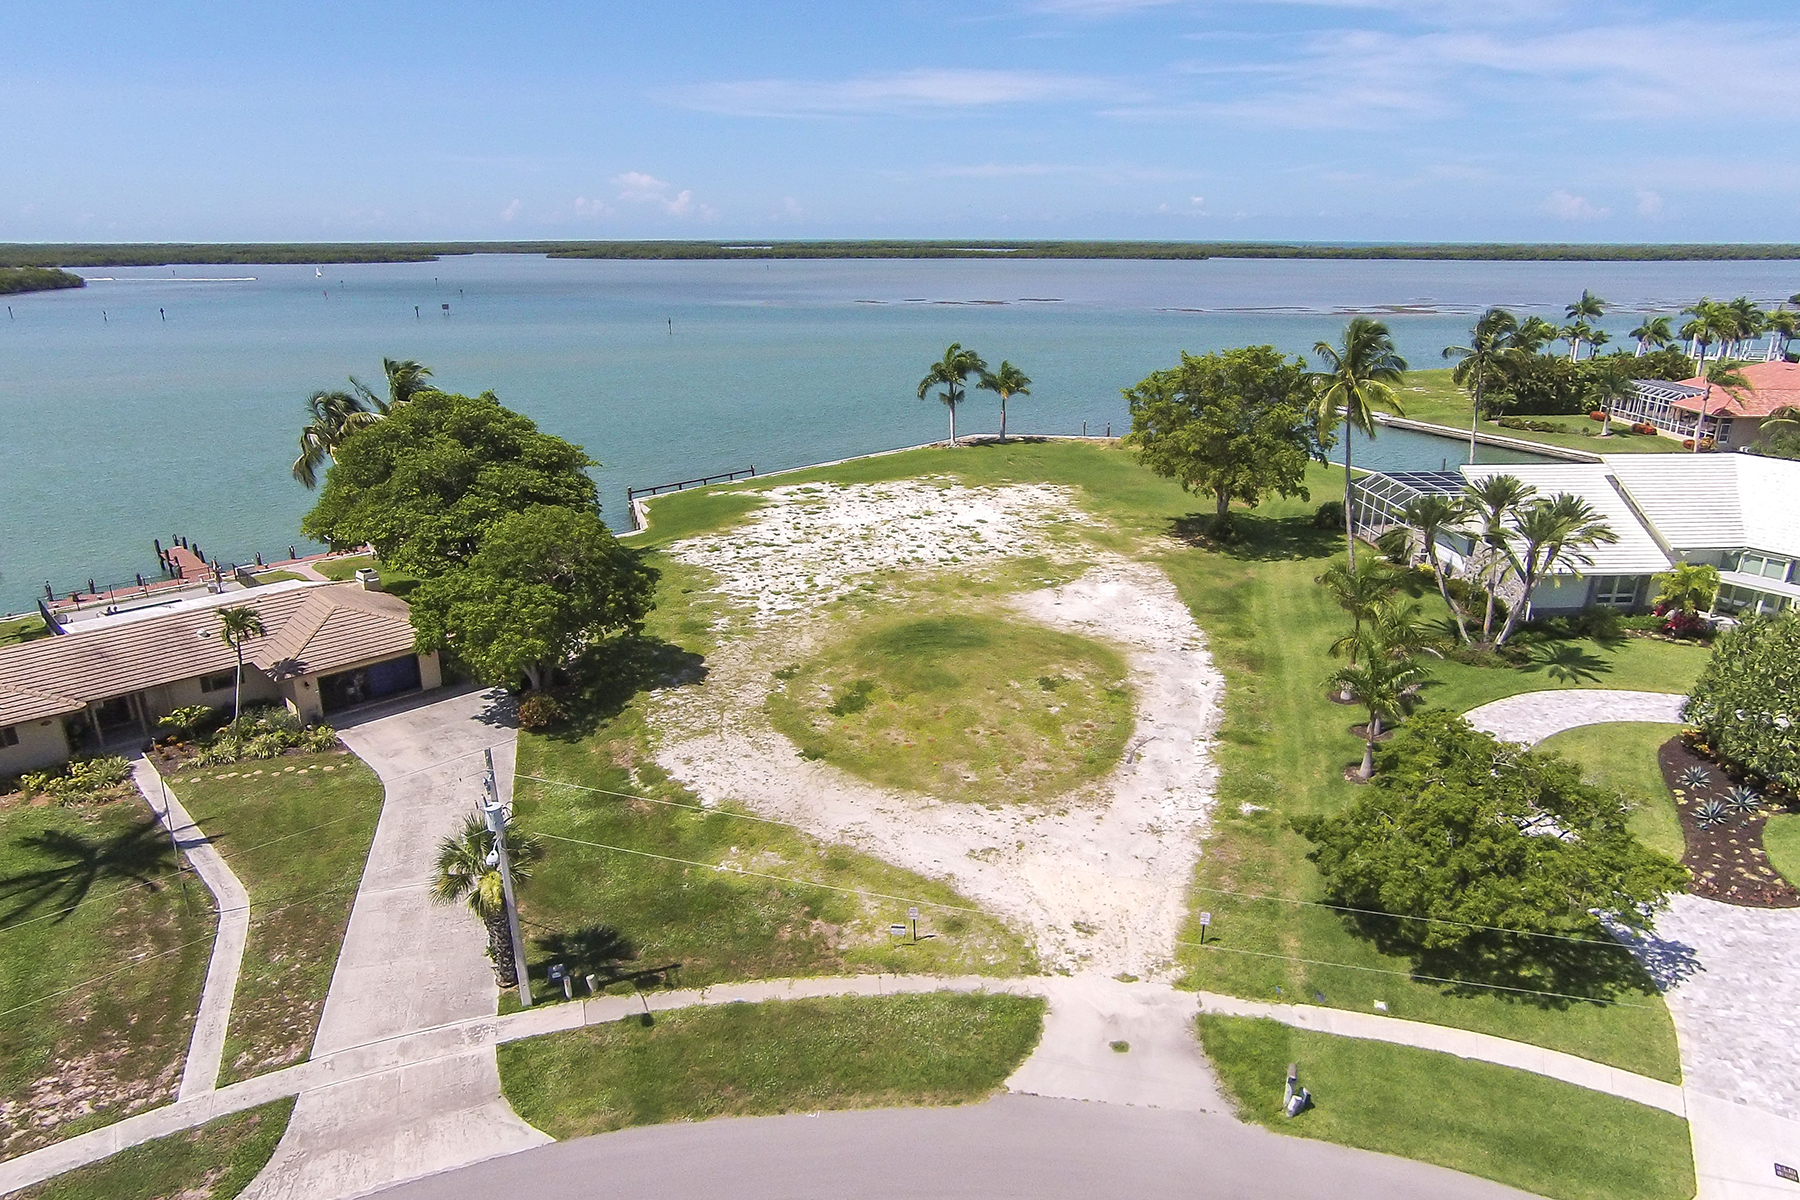 Land for Sale at MARCO ISLAND - CAXAMBAS DRIVE 1045 Caxambas Dr Marco Island, Florida 34145 United States